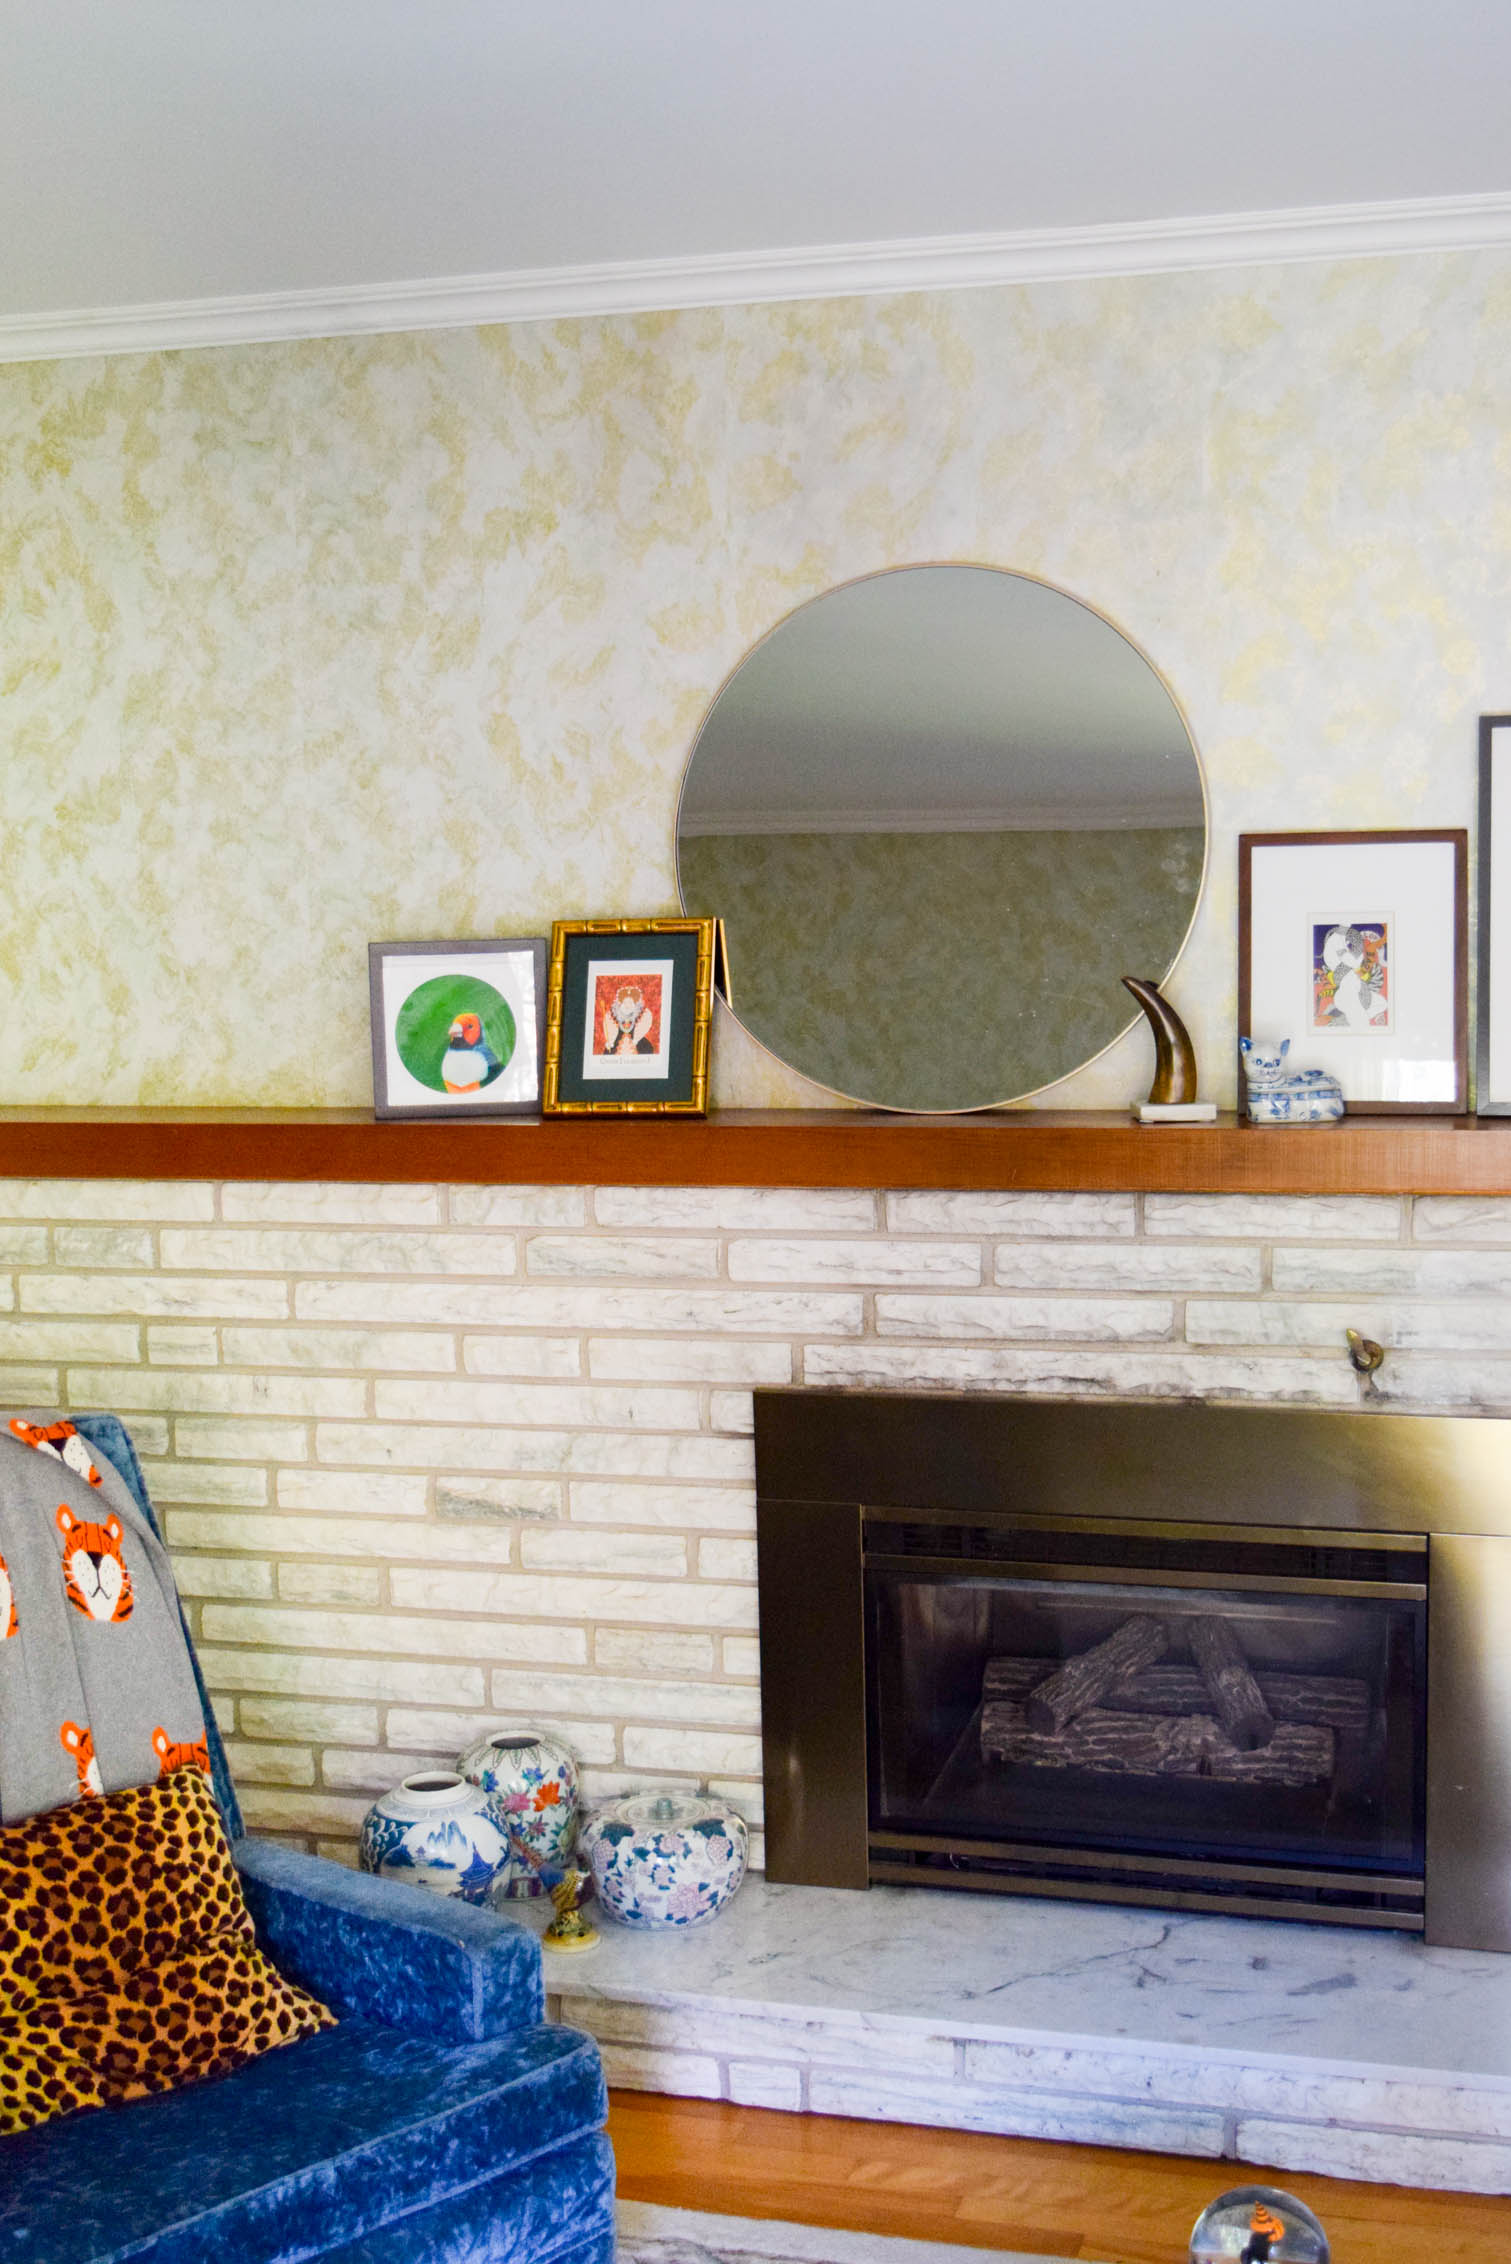 marble fireplace against tacky wallpaper